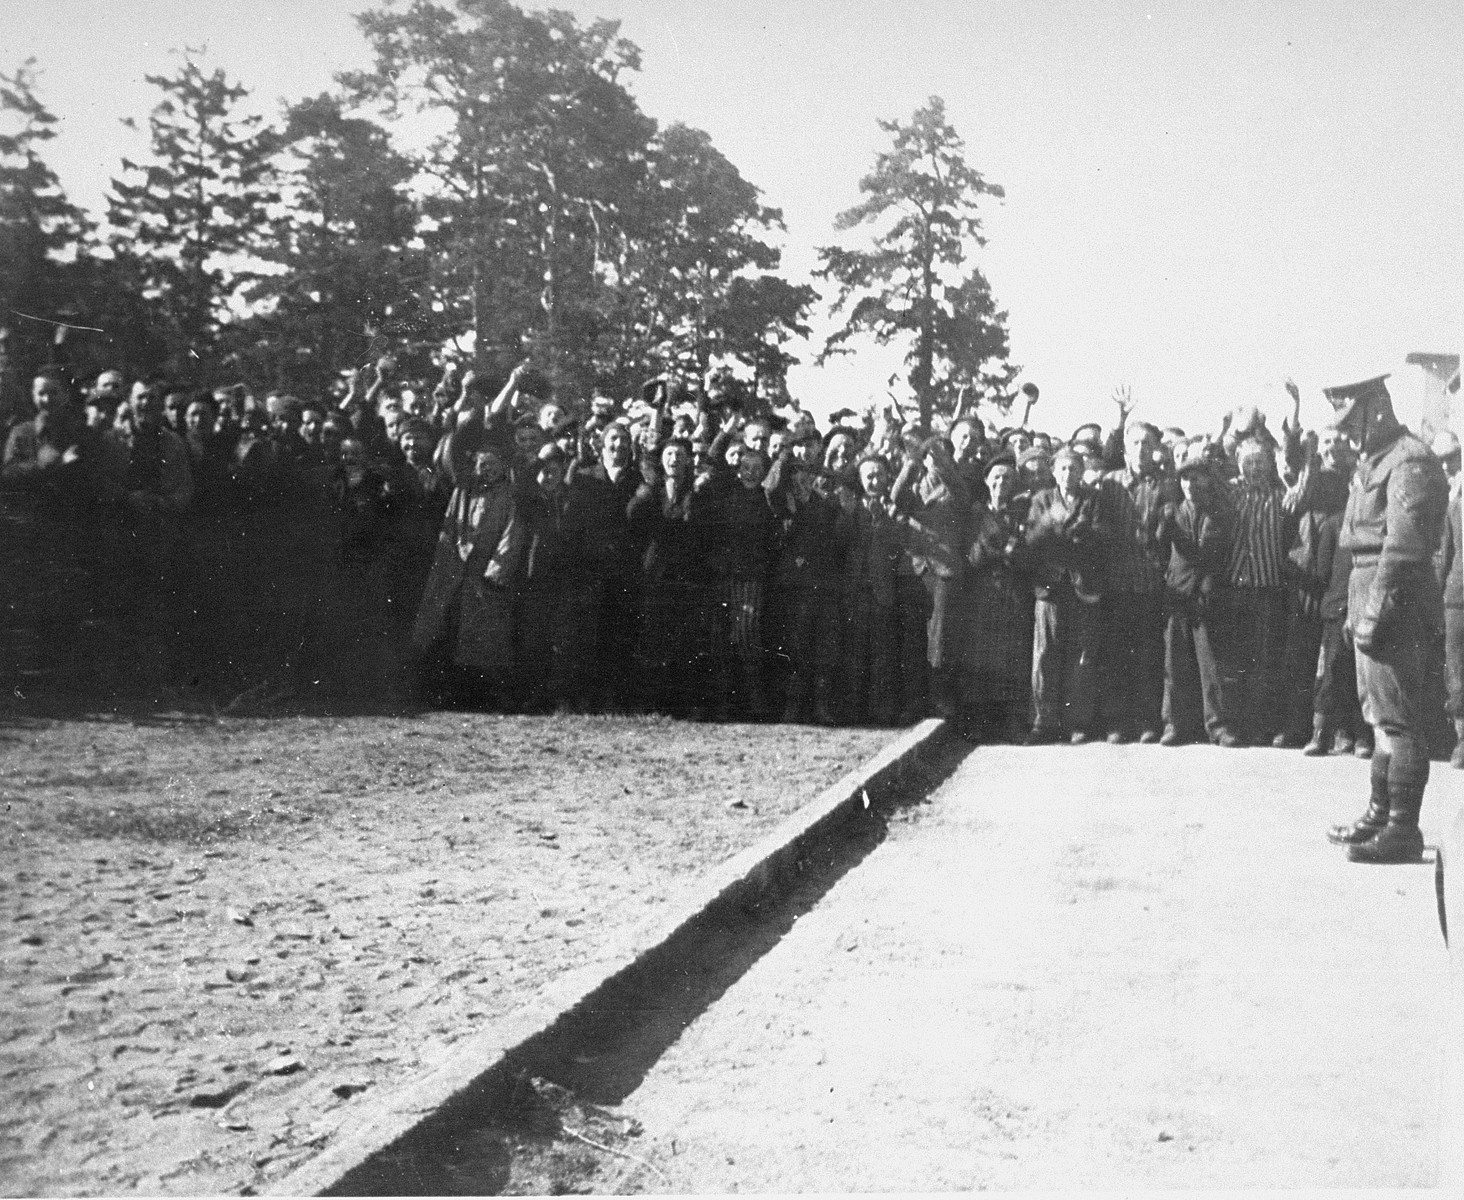 Survivors pay homage to people killed in  Bergen-Belsen concentration camp during a memorial service.